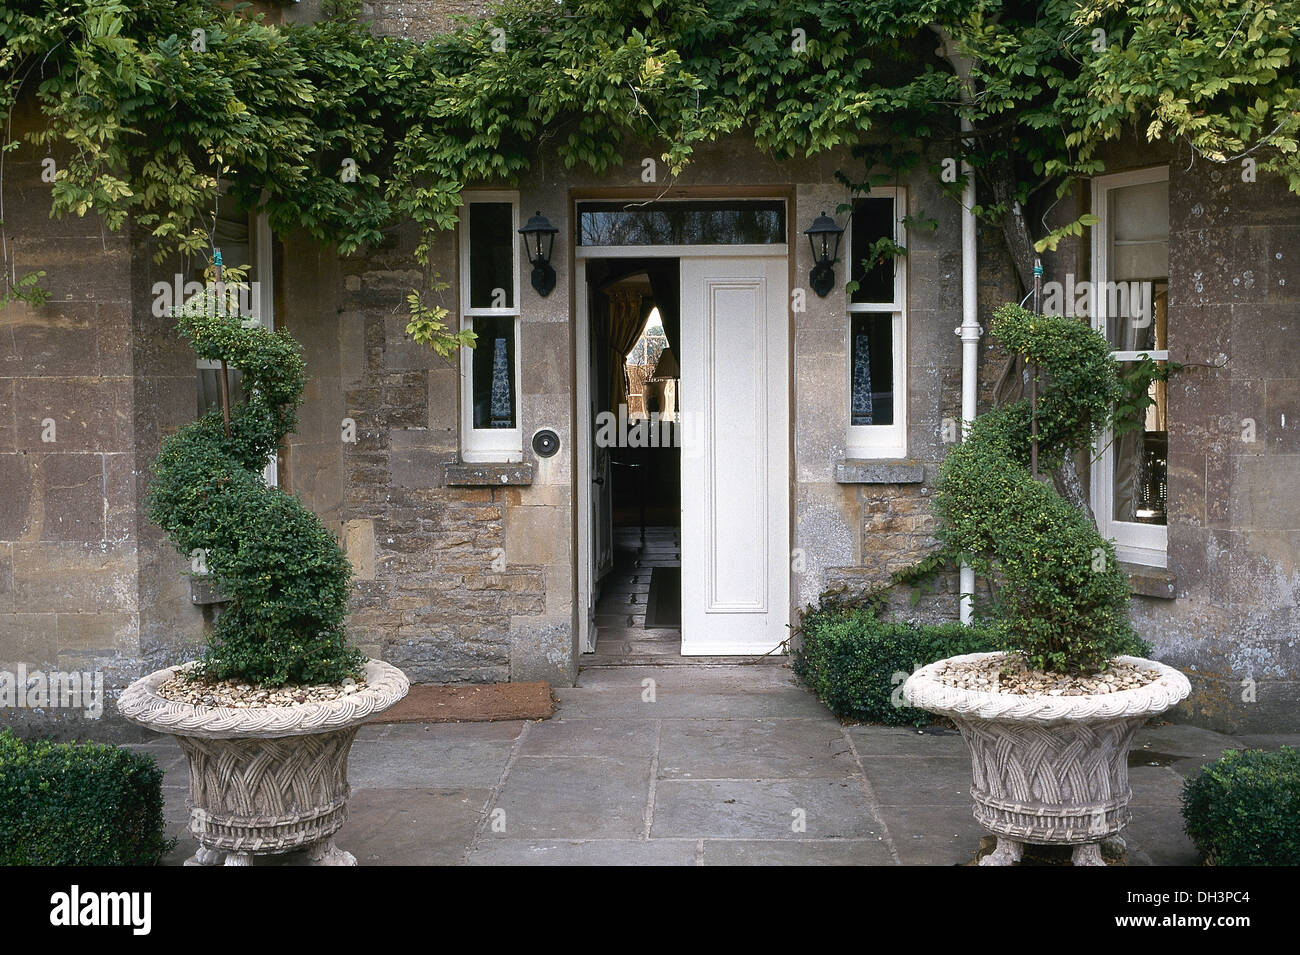 Spiral Topiary Box In Stone Urns In Front Of House With Open Front